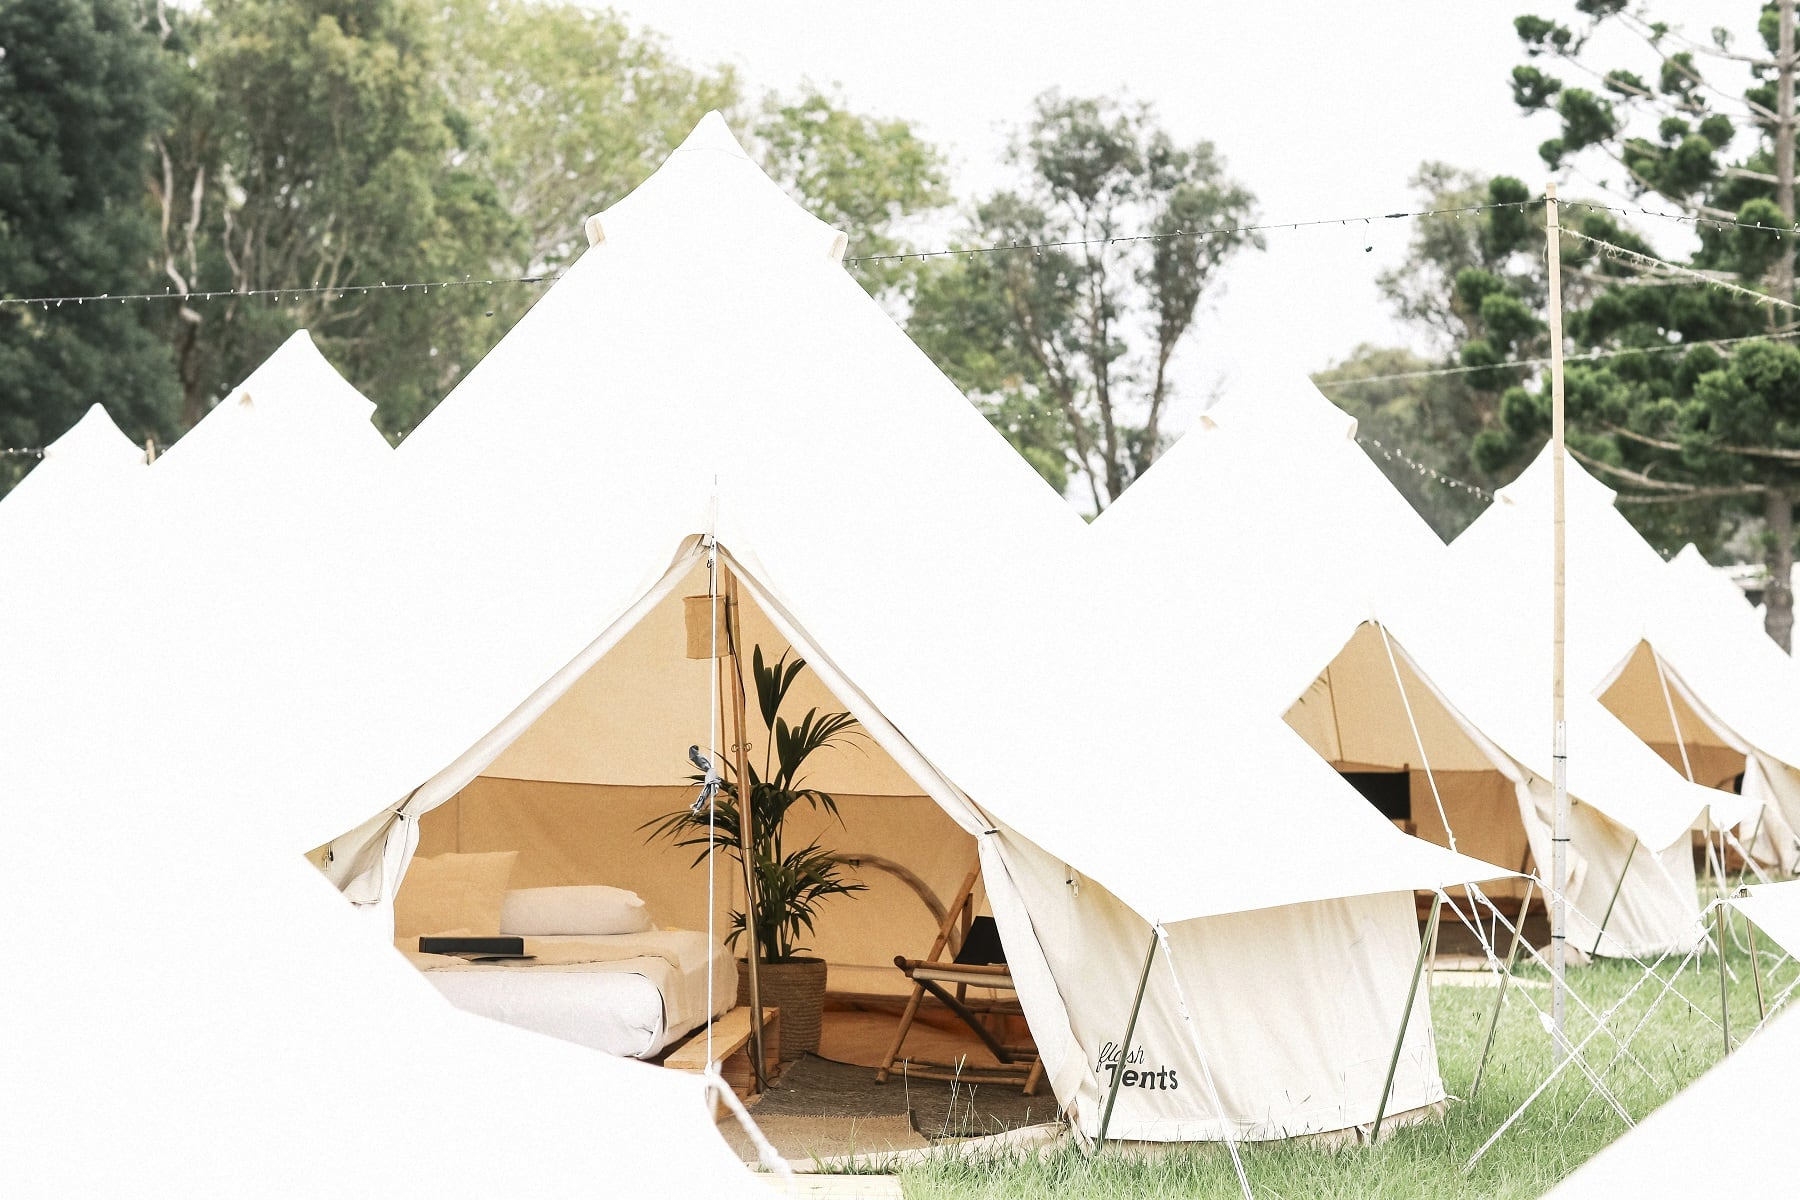 07_flash-camp_interior-tent-view_photo-by-elise-hassey_small